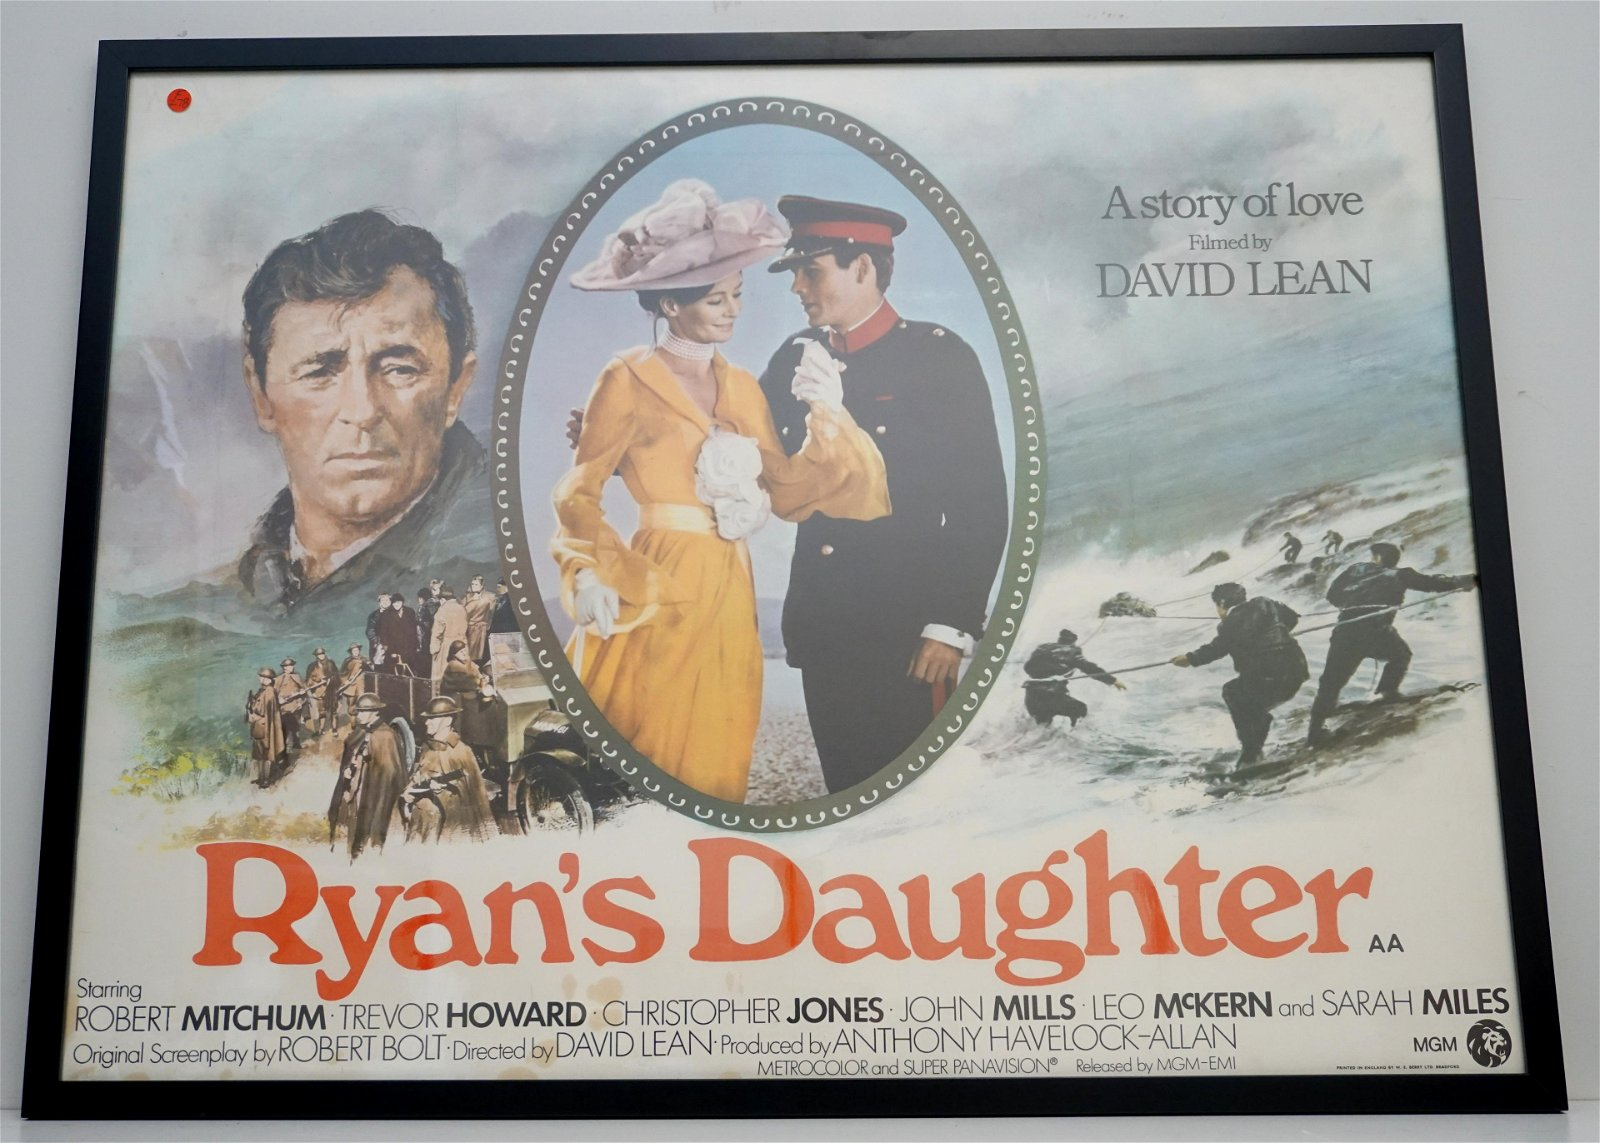 1970 RYAN'S DAUGHTER MOVIE POSTER